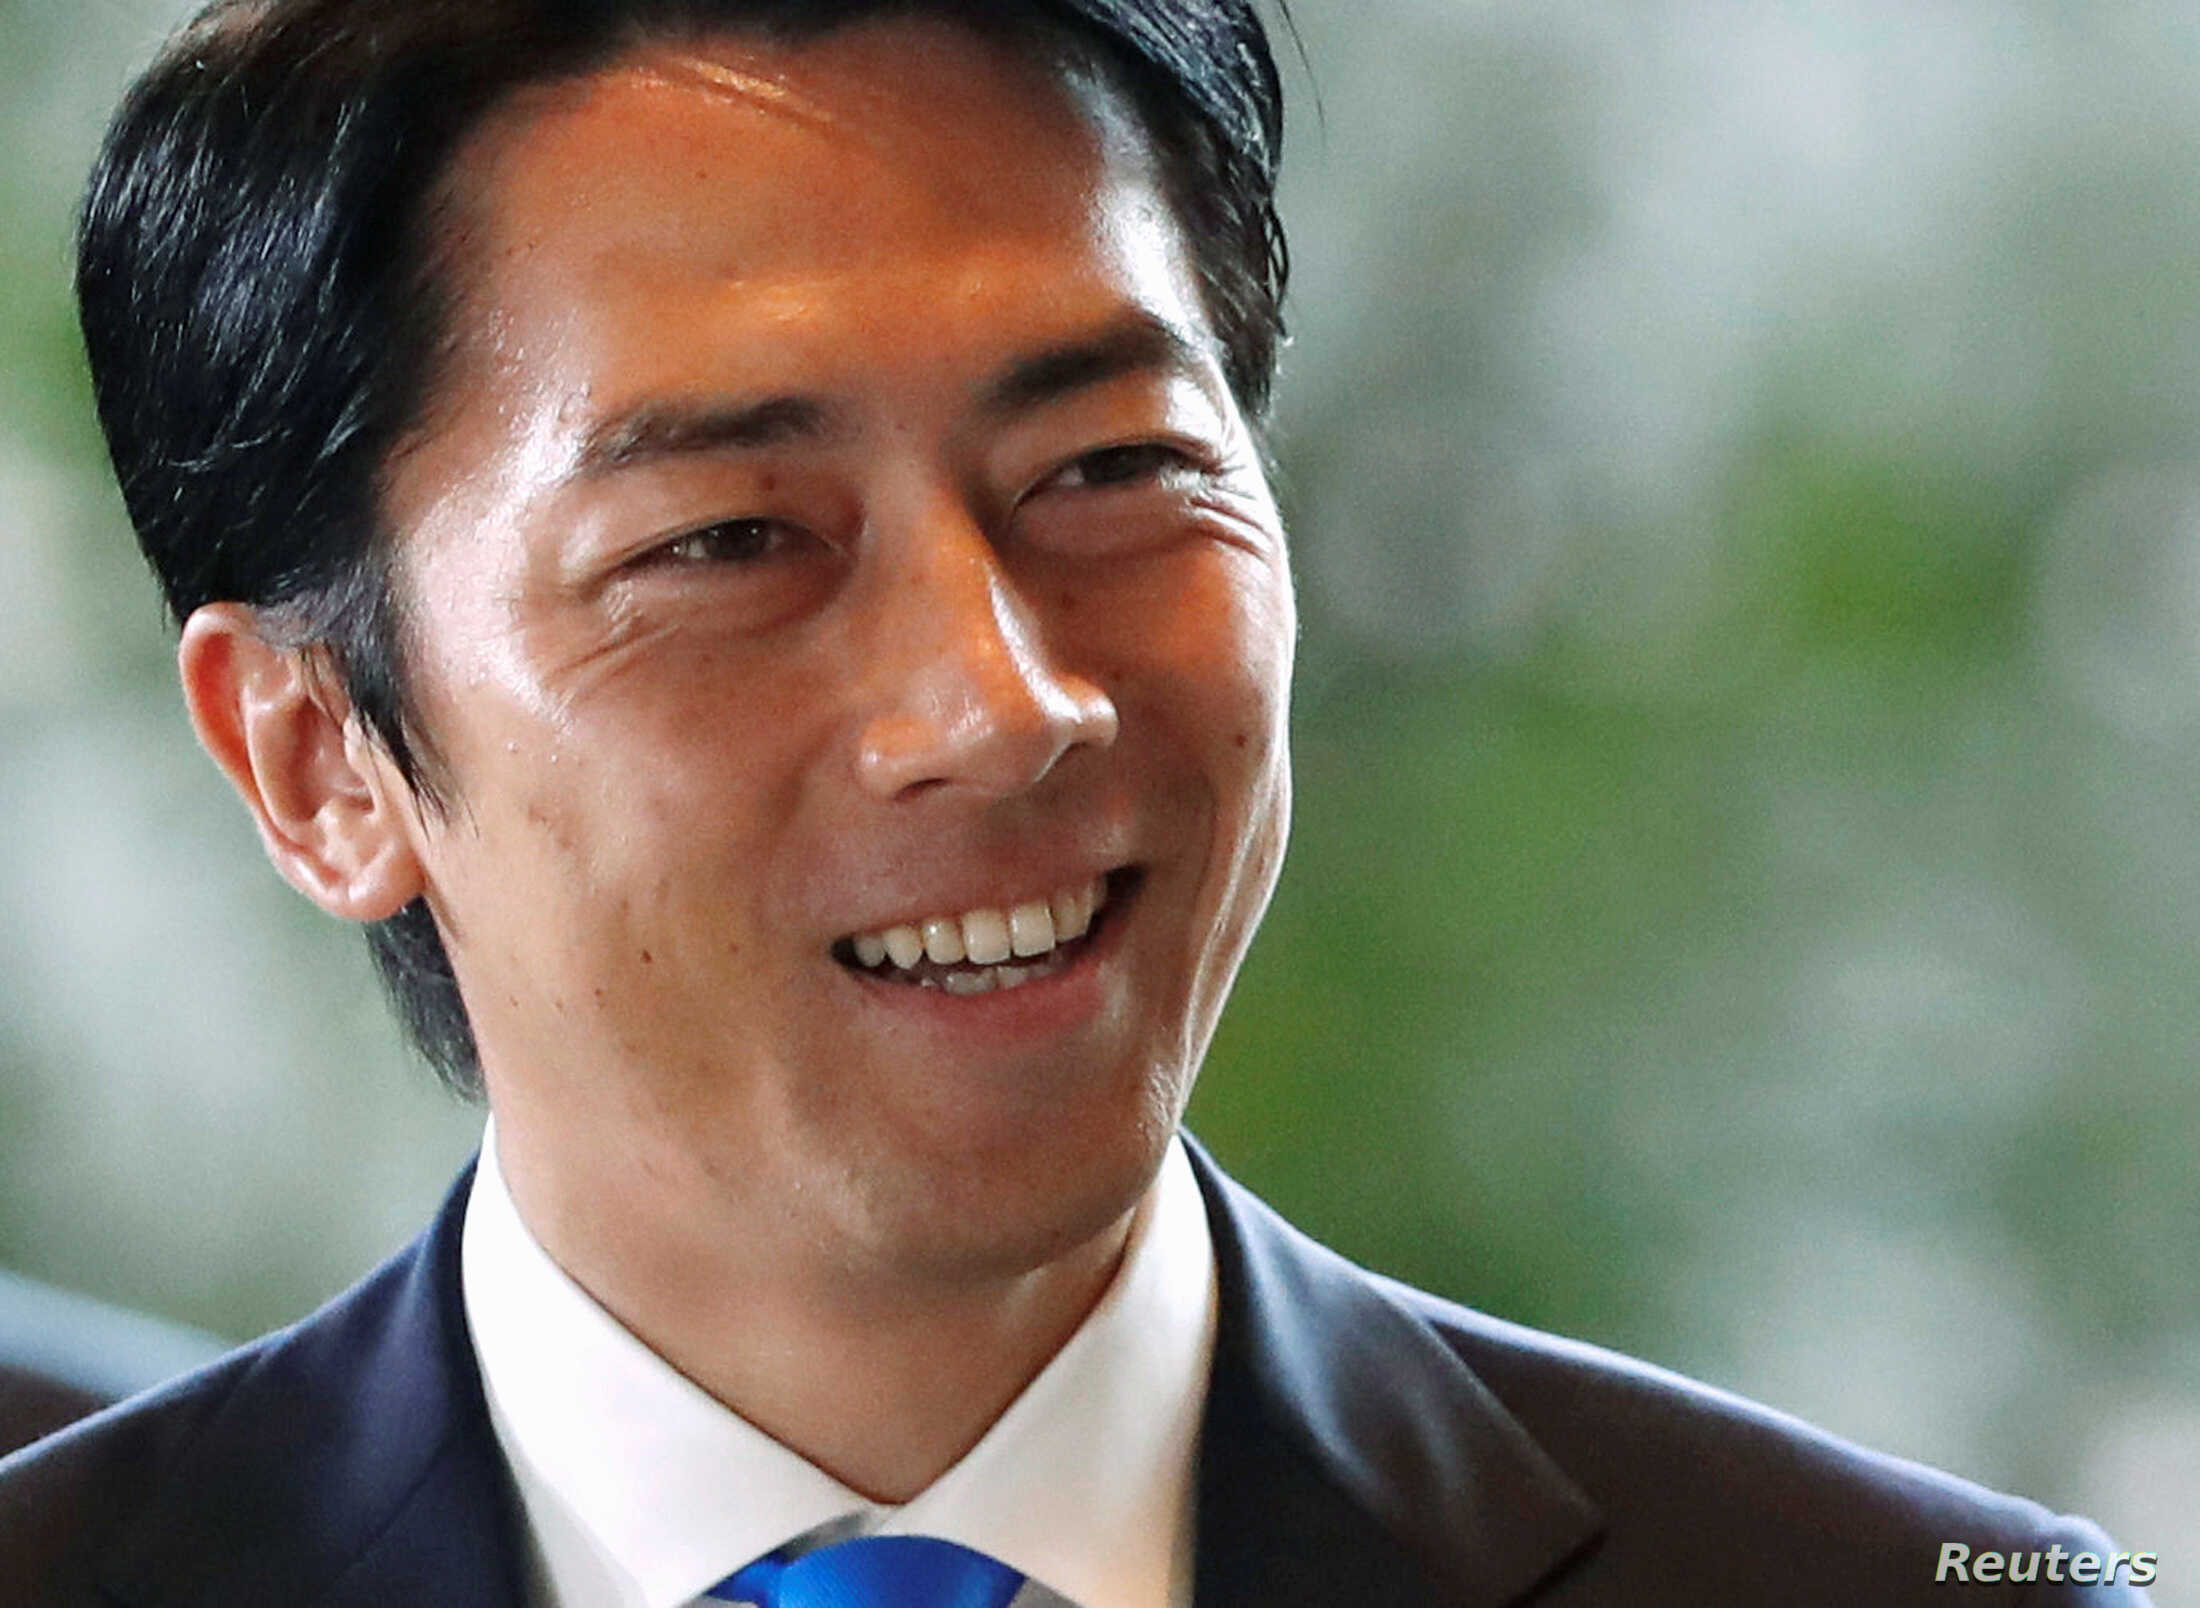 It S A Boy Paternity Leave Looms For Japanese Minister Koizumi Voice Of America English